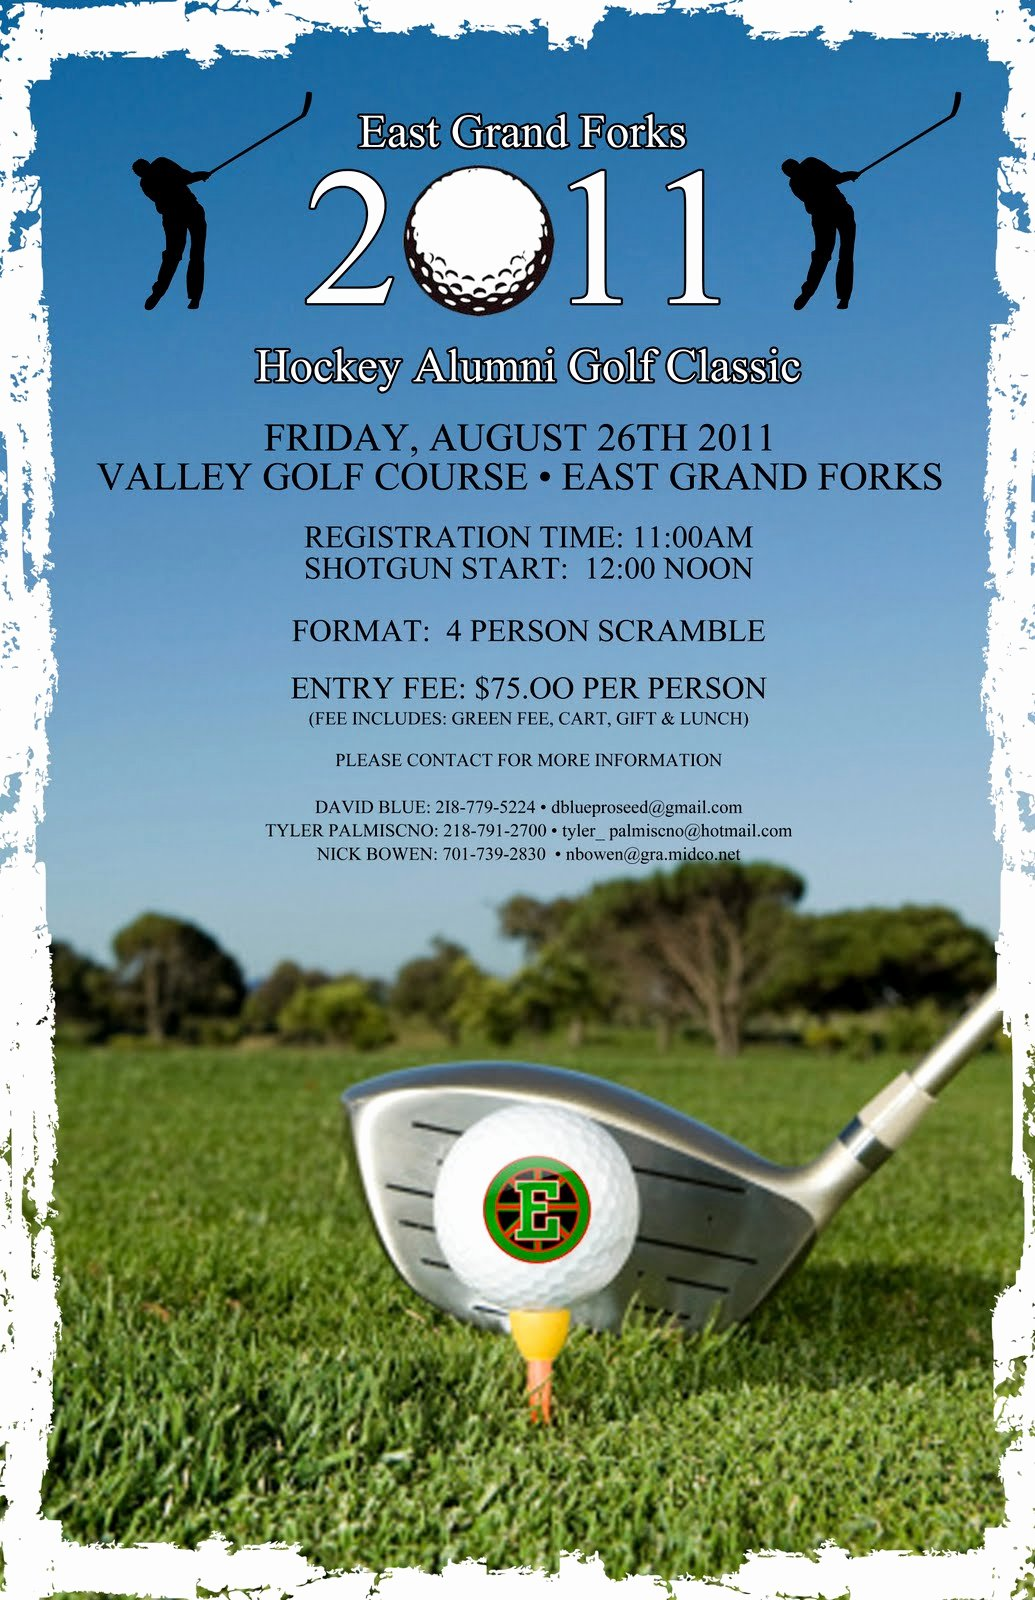 Golf tournament Flyers Template Luxury East Grand forks Greenwave Hockey Golf tournament